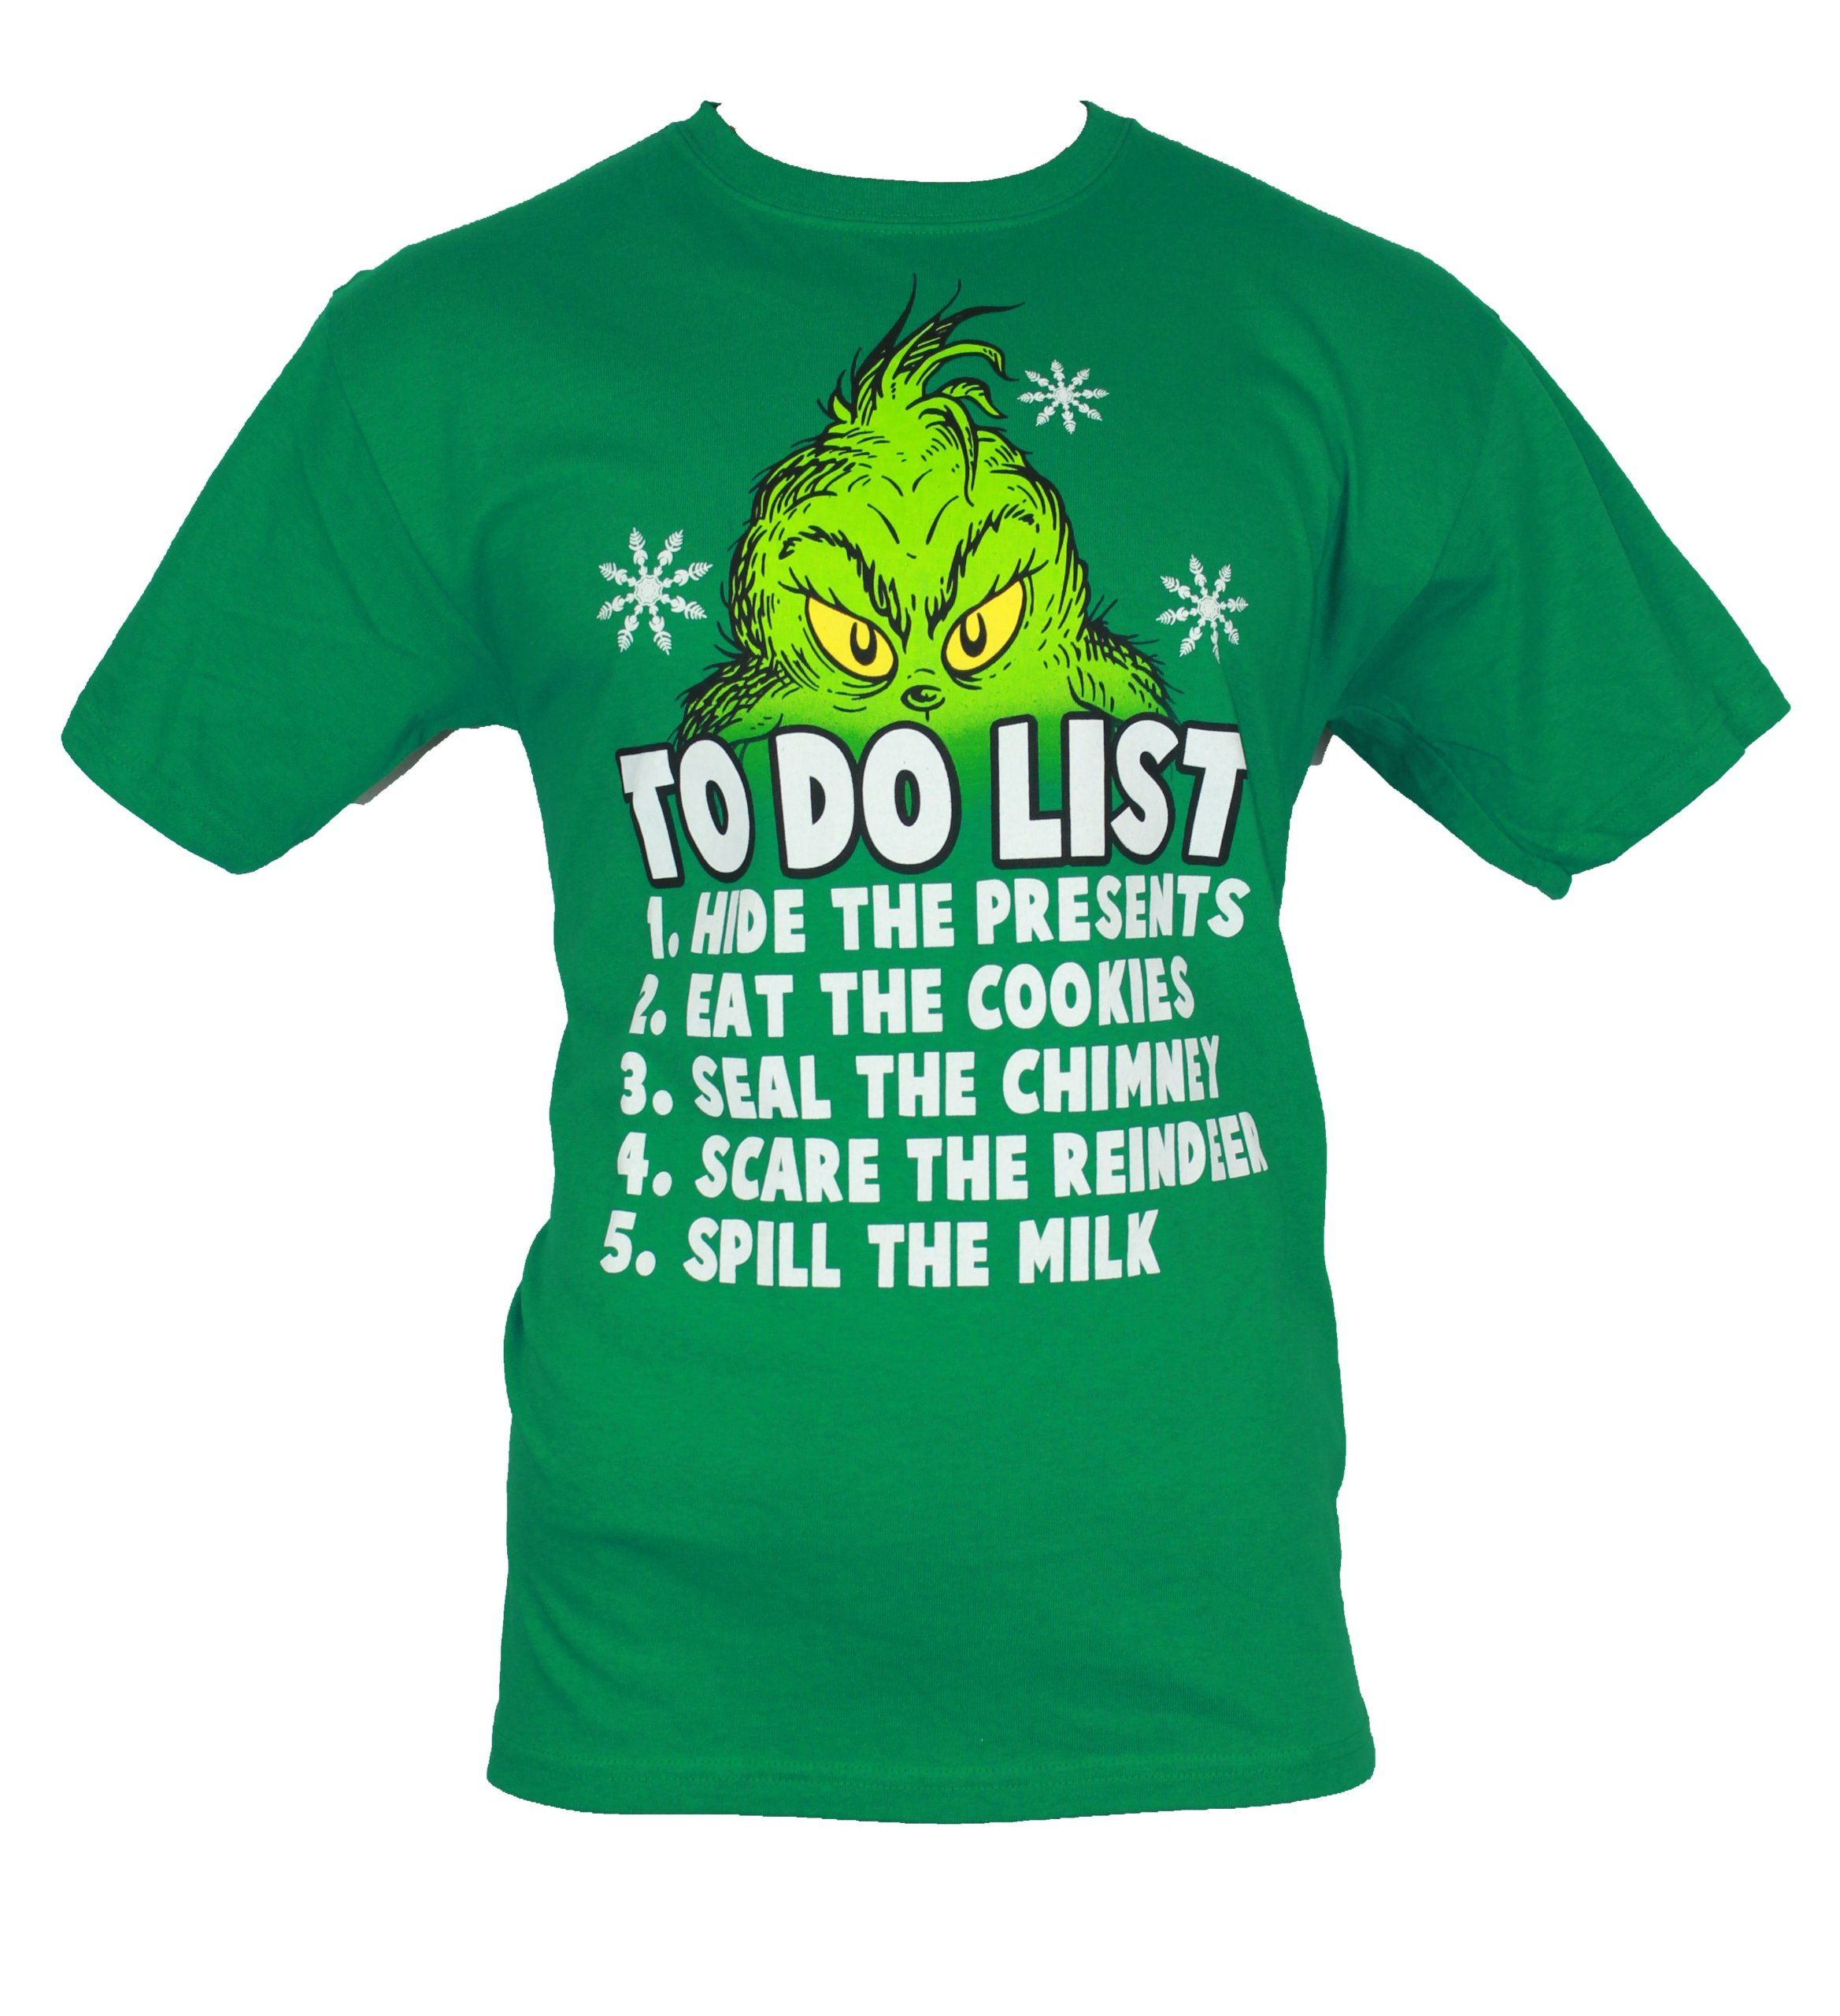 ce61e2ad62 grinch t shirts women - Google Search | Grinch | Grinch stole ...